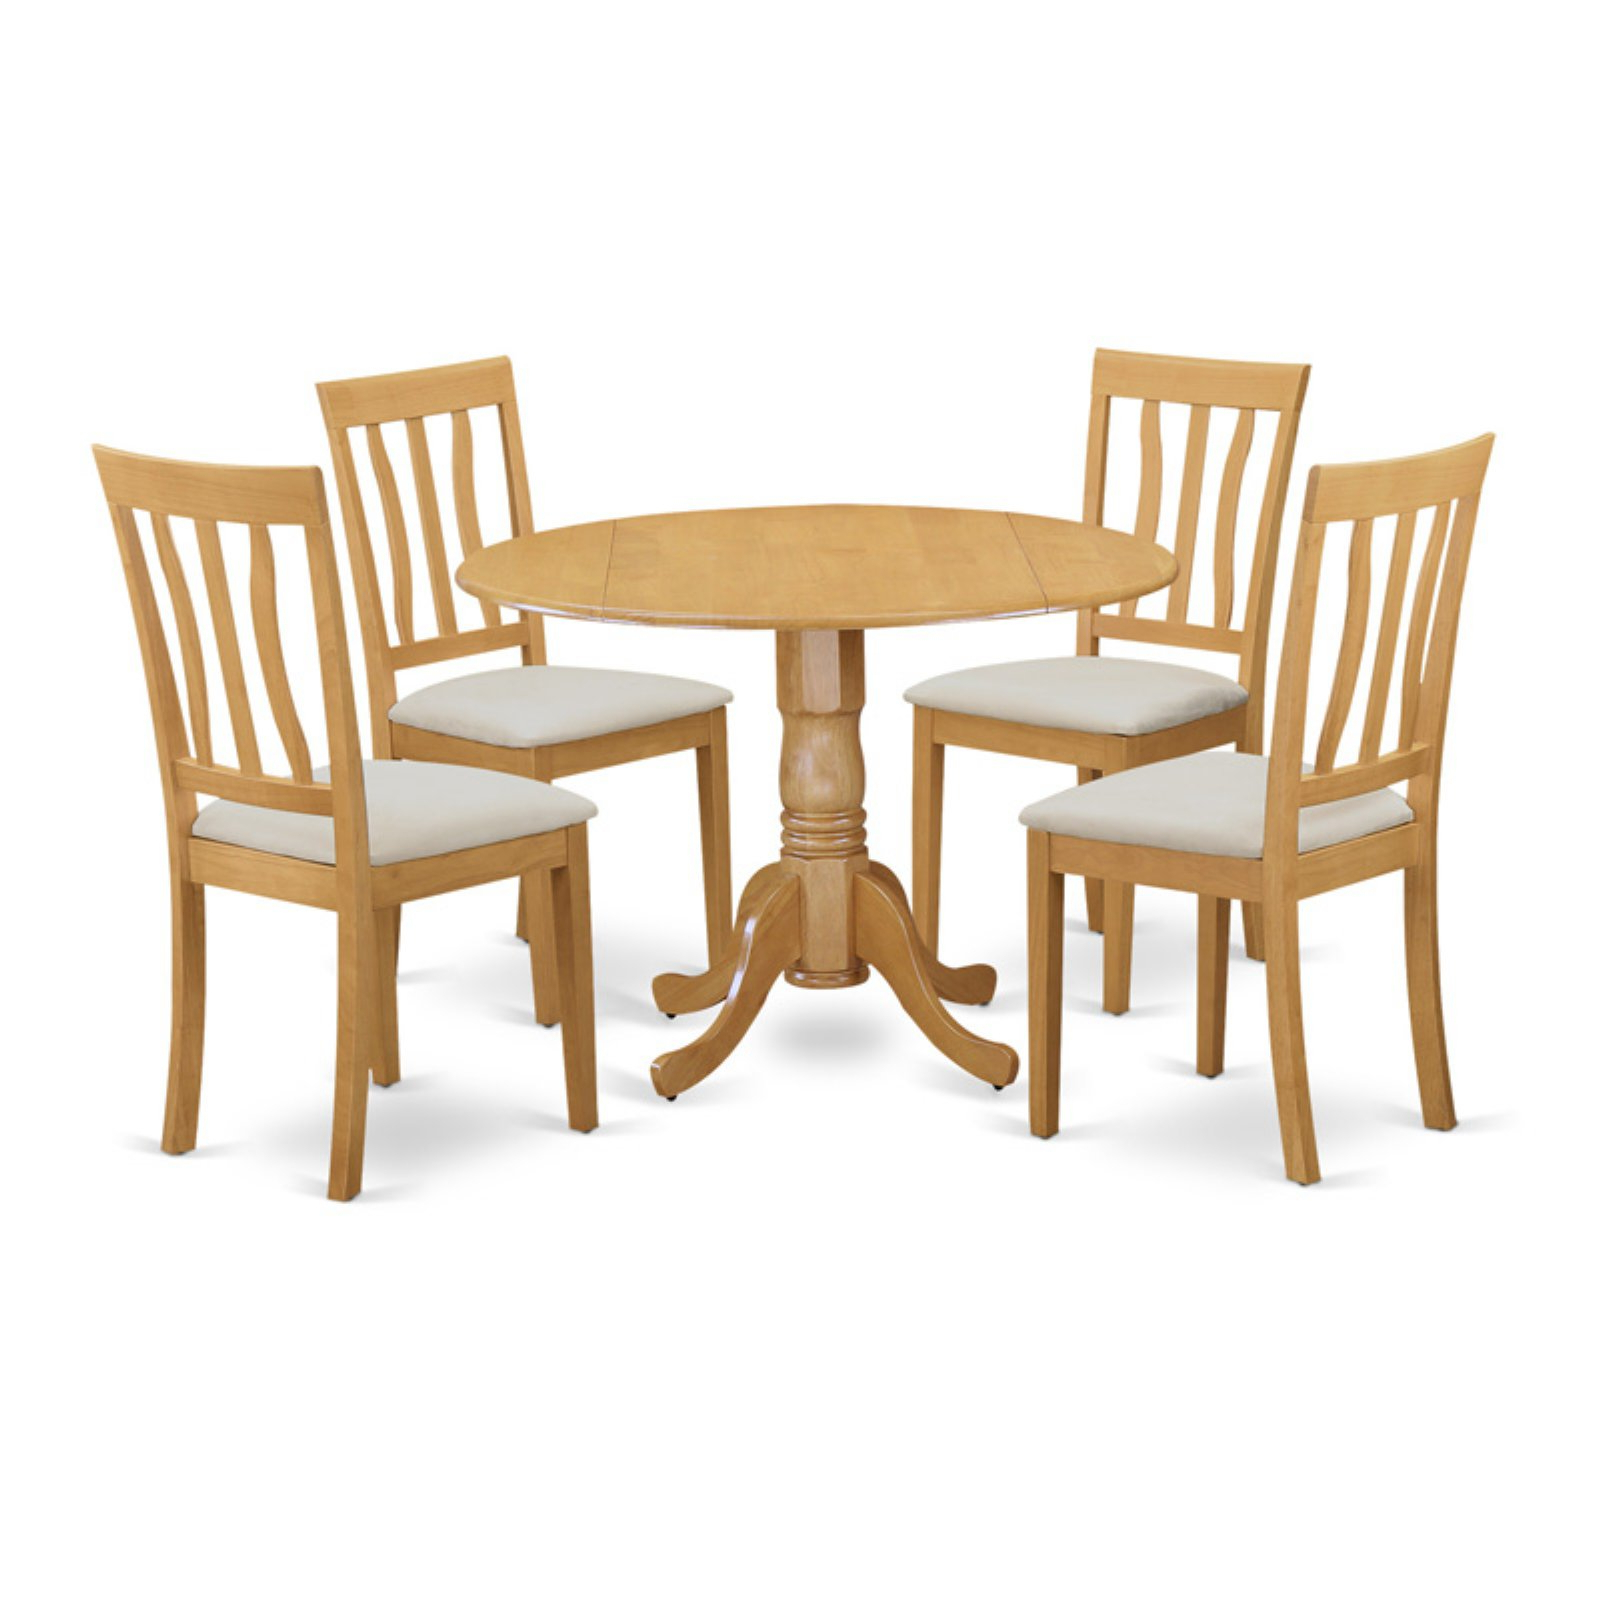 Recent East West Furniture 5 Piece Splat Back Drop Leaf Dinette Dining Table Set Intended For Transitional 3 Piece Drop Leaf Casual Dining Tables Set (View 19 of 30)